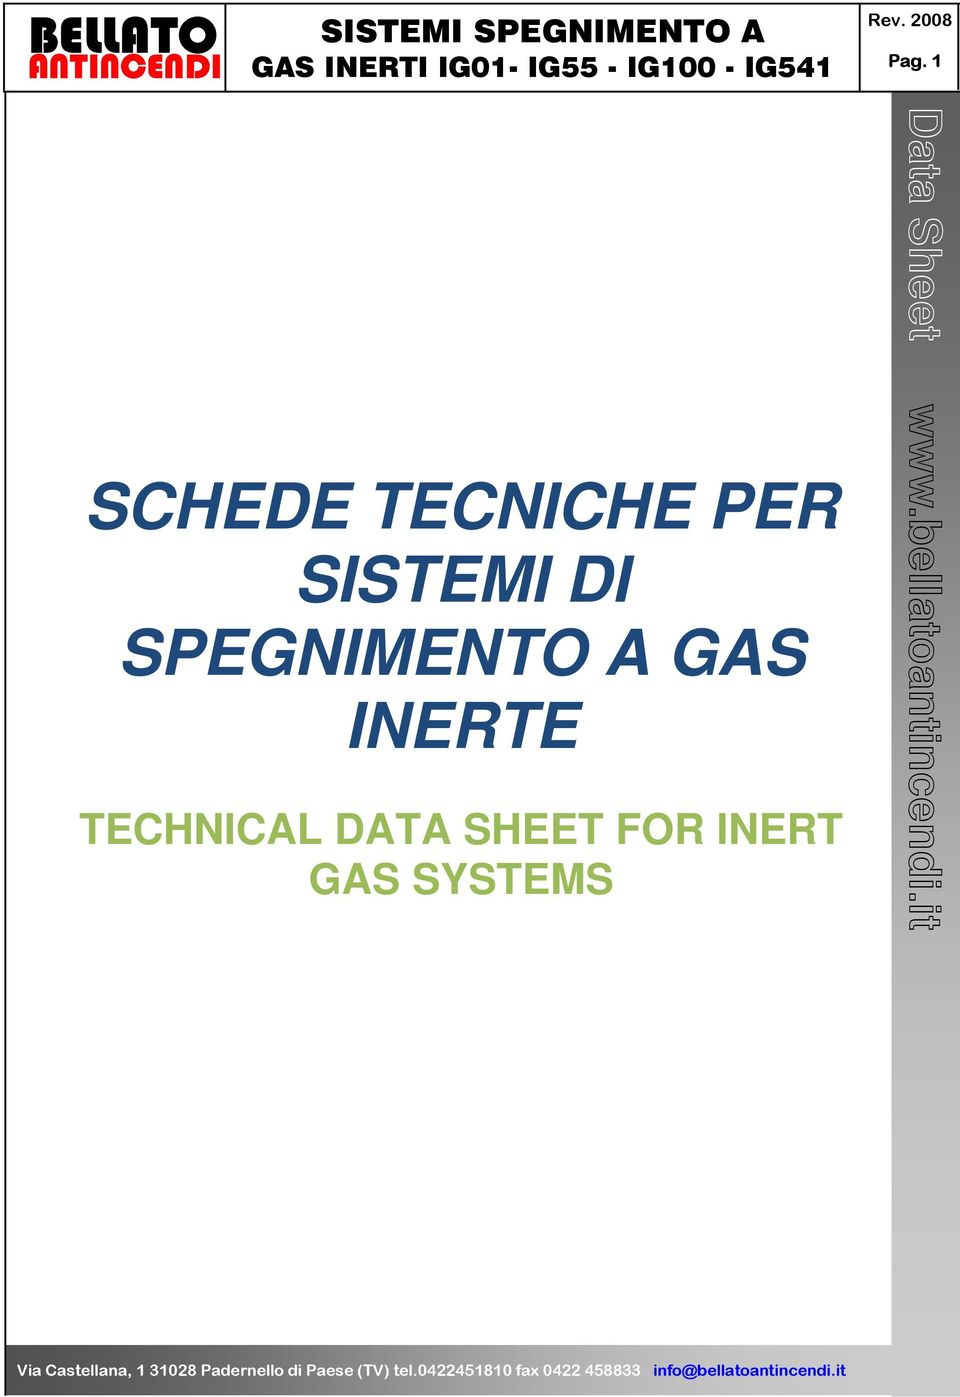 GAS INERTE TECHNICAL DATA